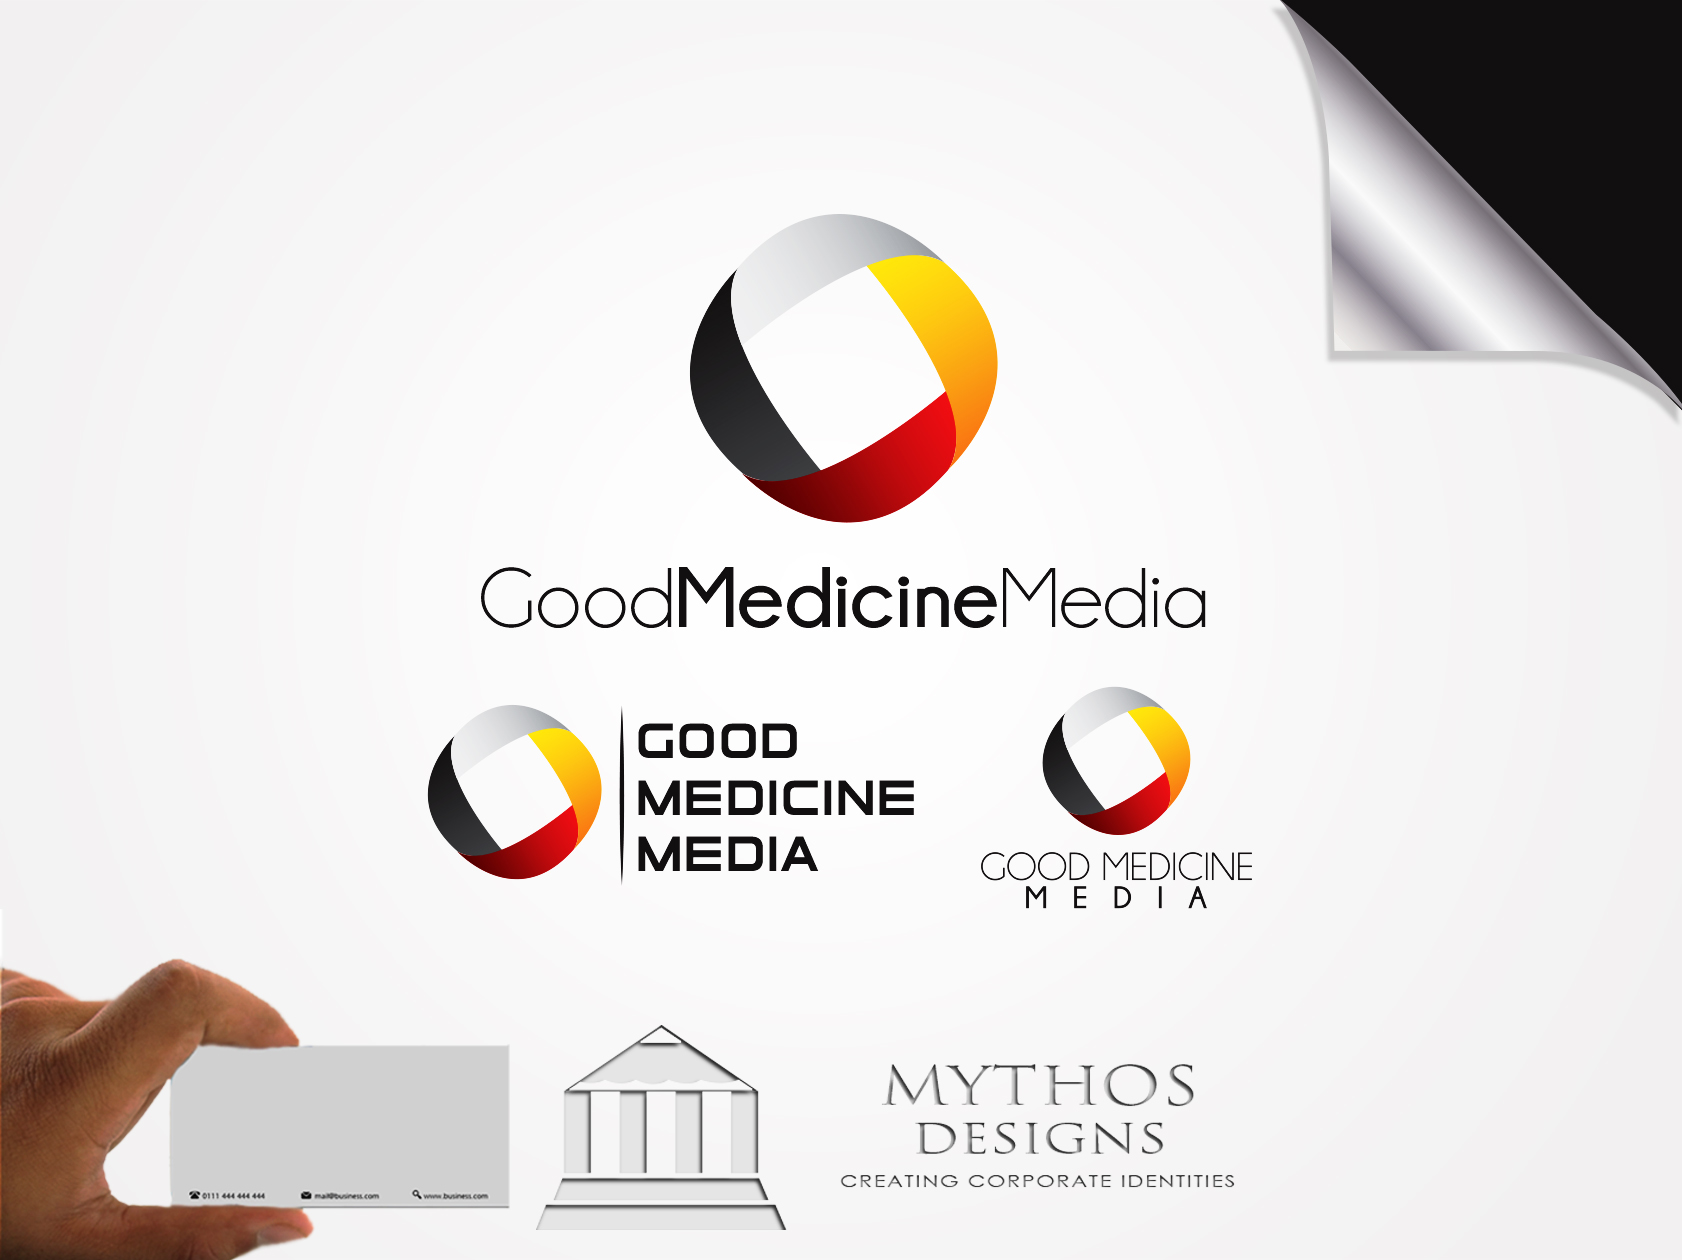 Logo Design by Mythos Designs - Entry No. 187 in the Logo Design Contest Good Medicine Media Logo Design.